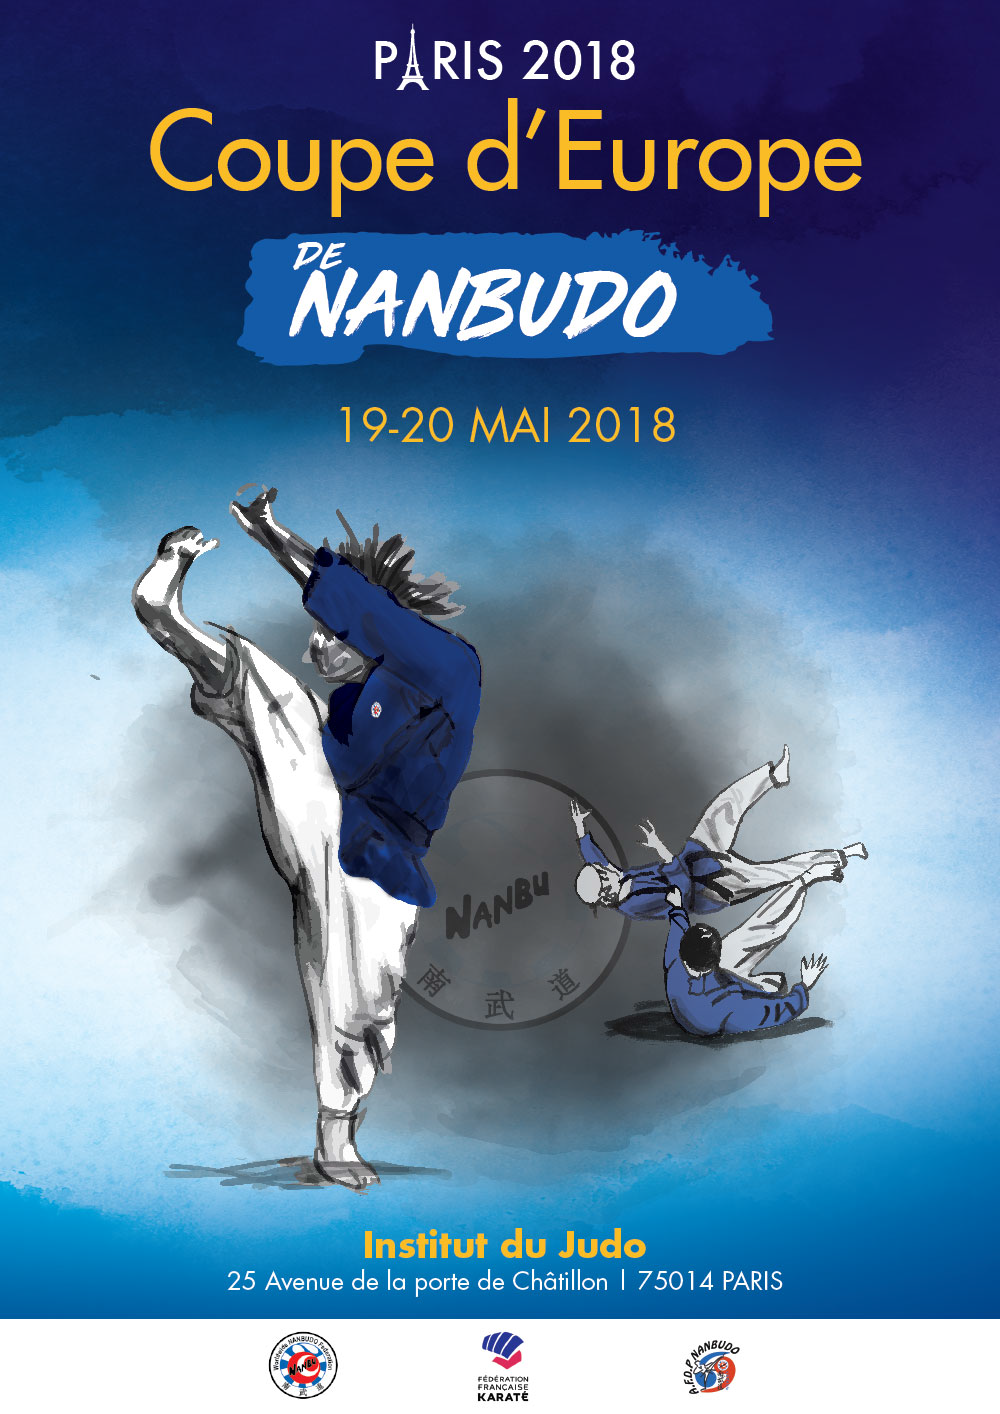 COUPE D'EUROPE DE NANBUDO